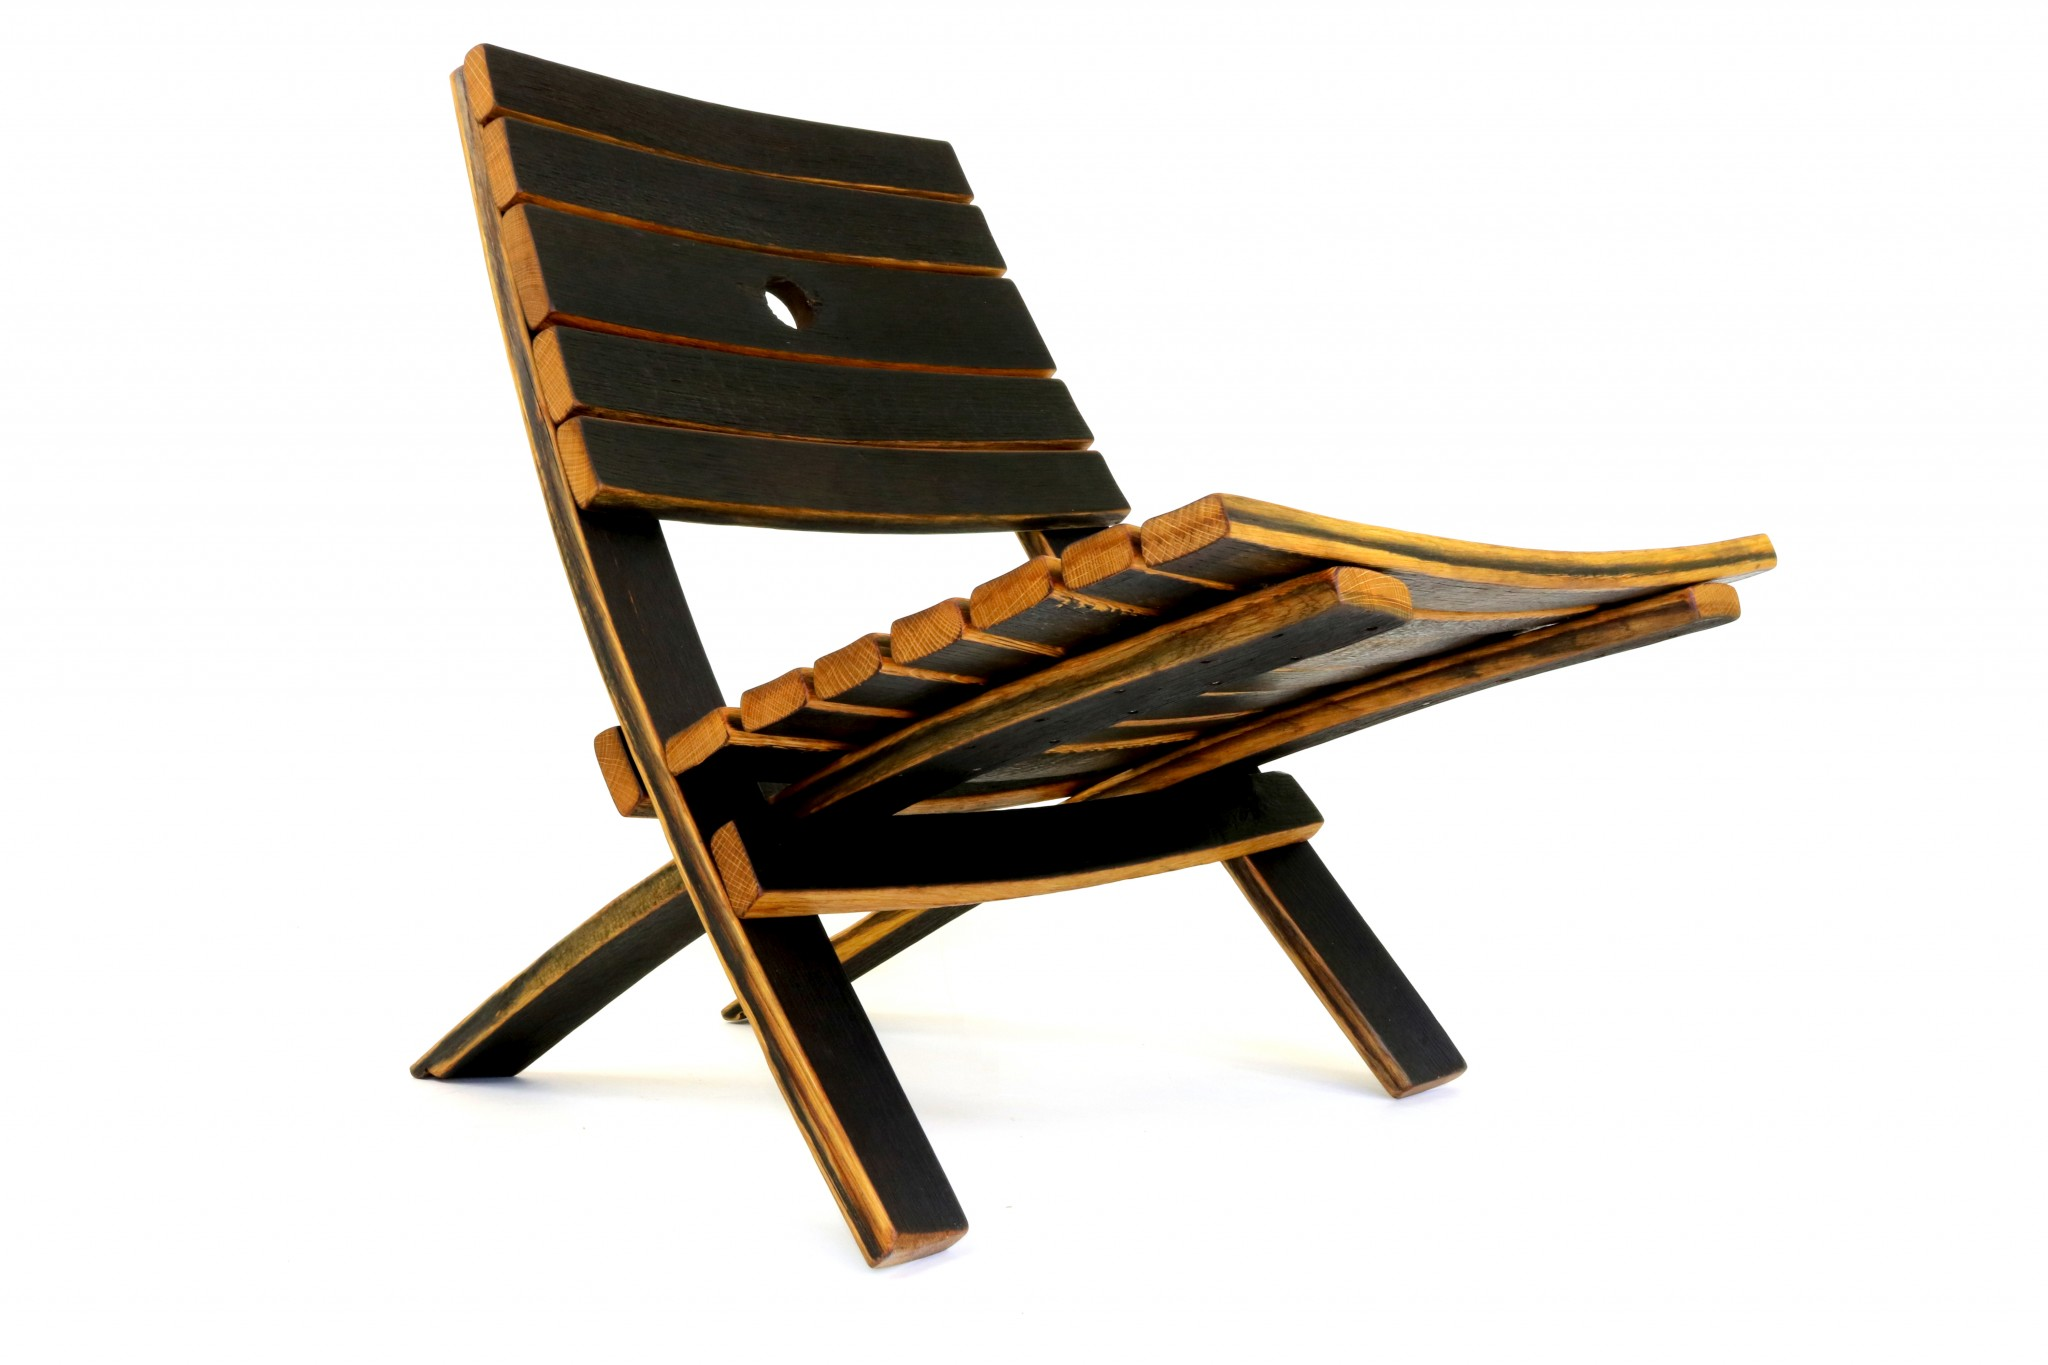 how are chairs made lowes rocking chair furniture from whiskey barrels hungarian workshop